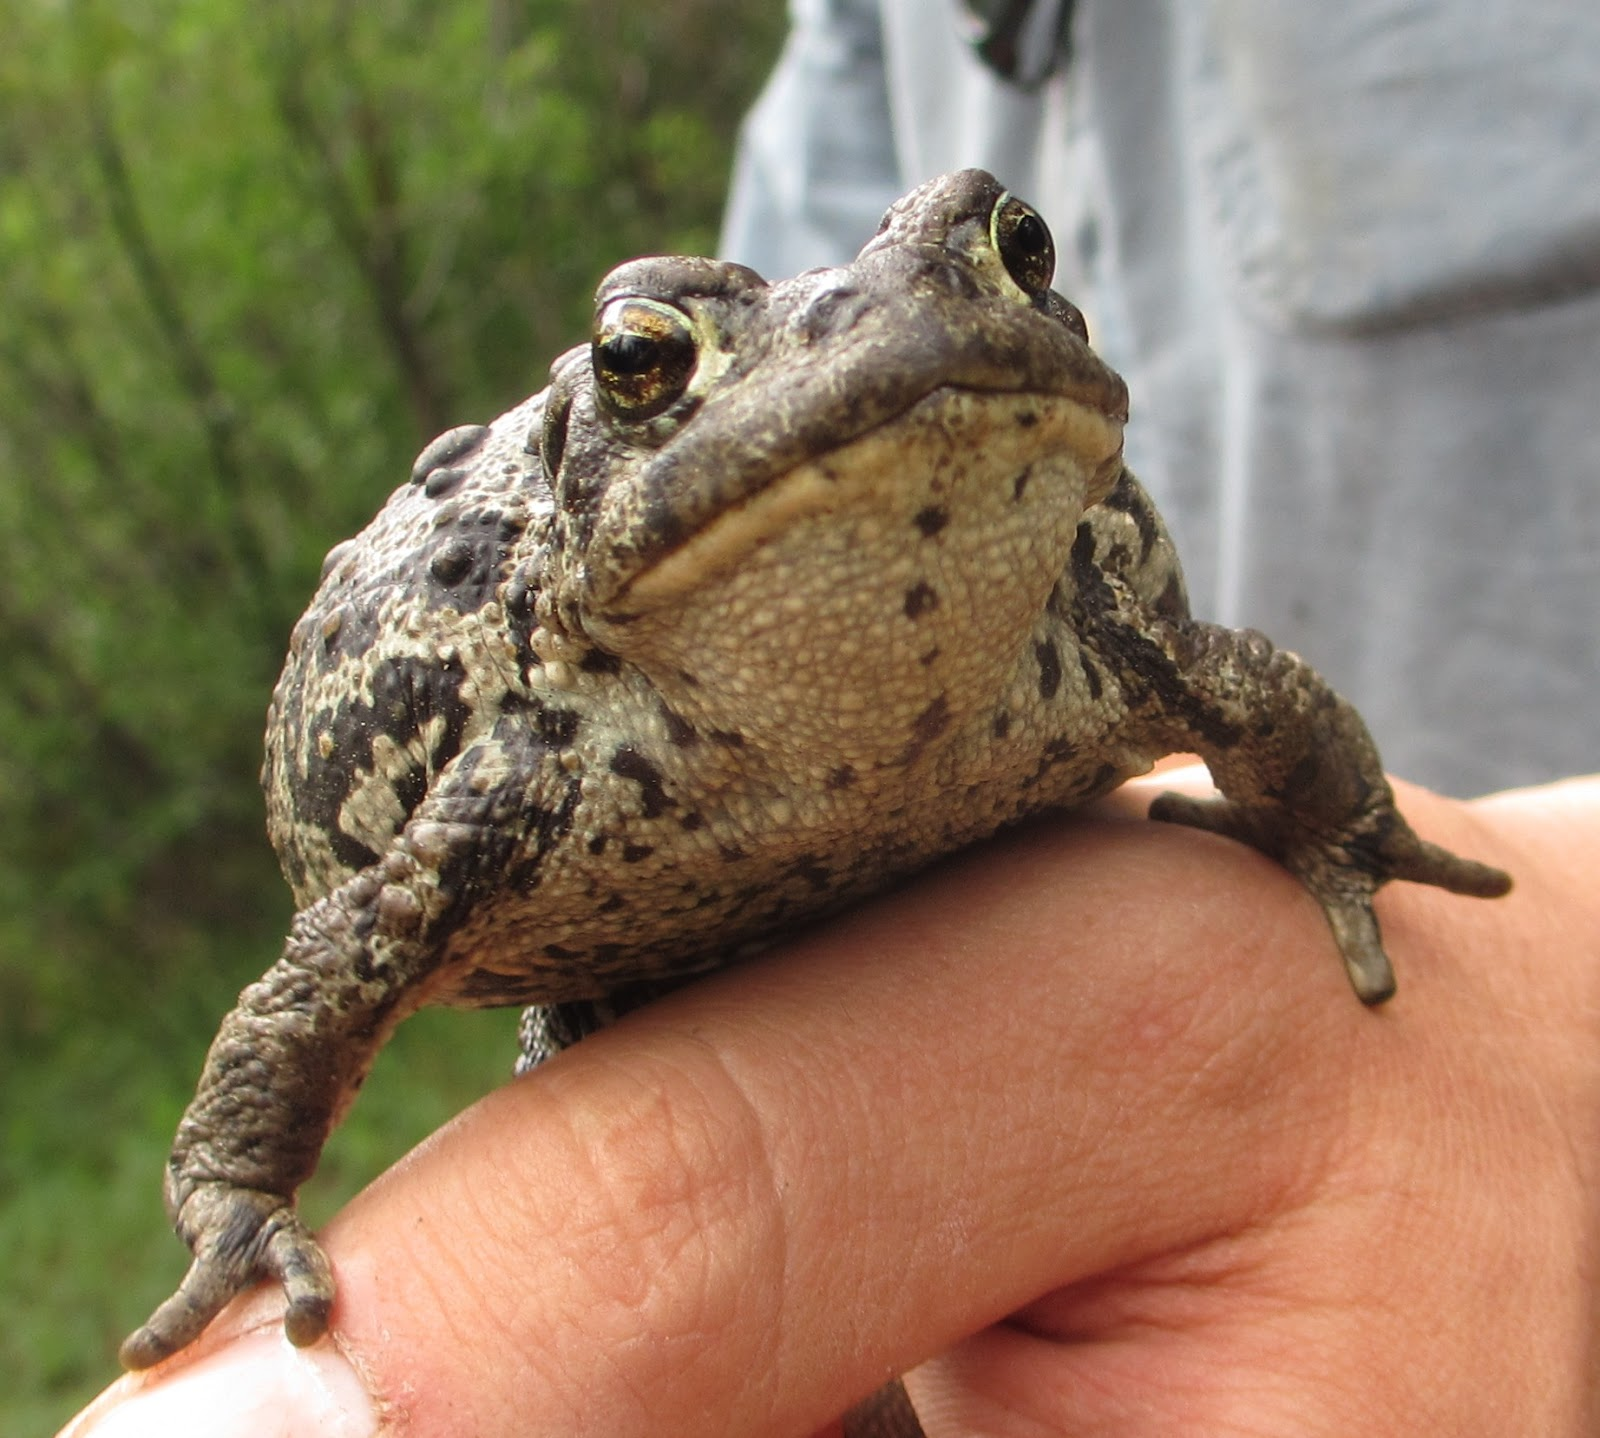 Cannundrums boreal toad we found two of the toads hopping through long grass in a swampy area bordering the pine trees incidentally it was also within yards of the area we found sciox Image collections